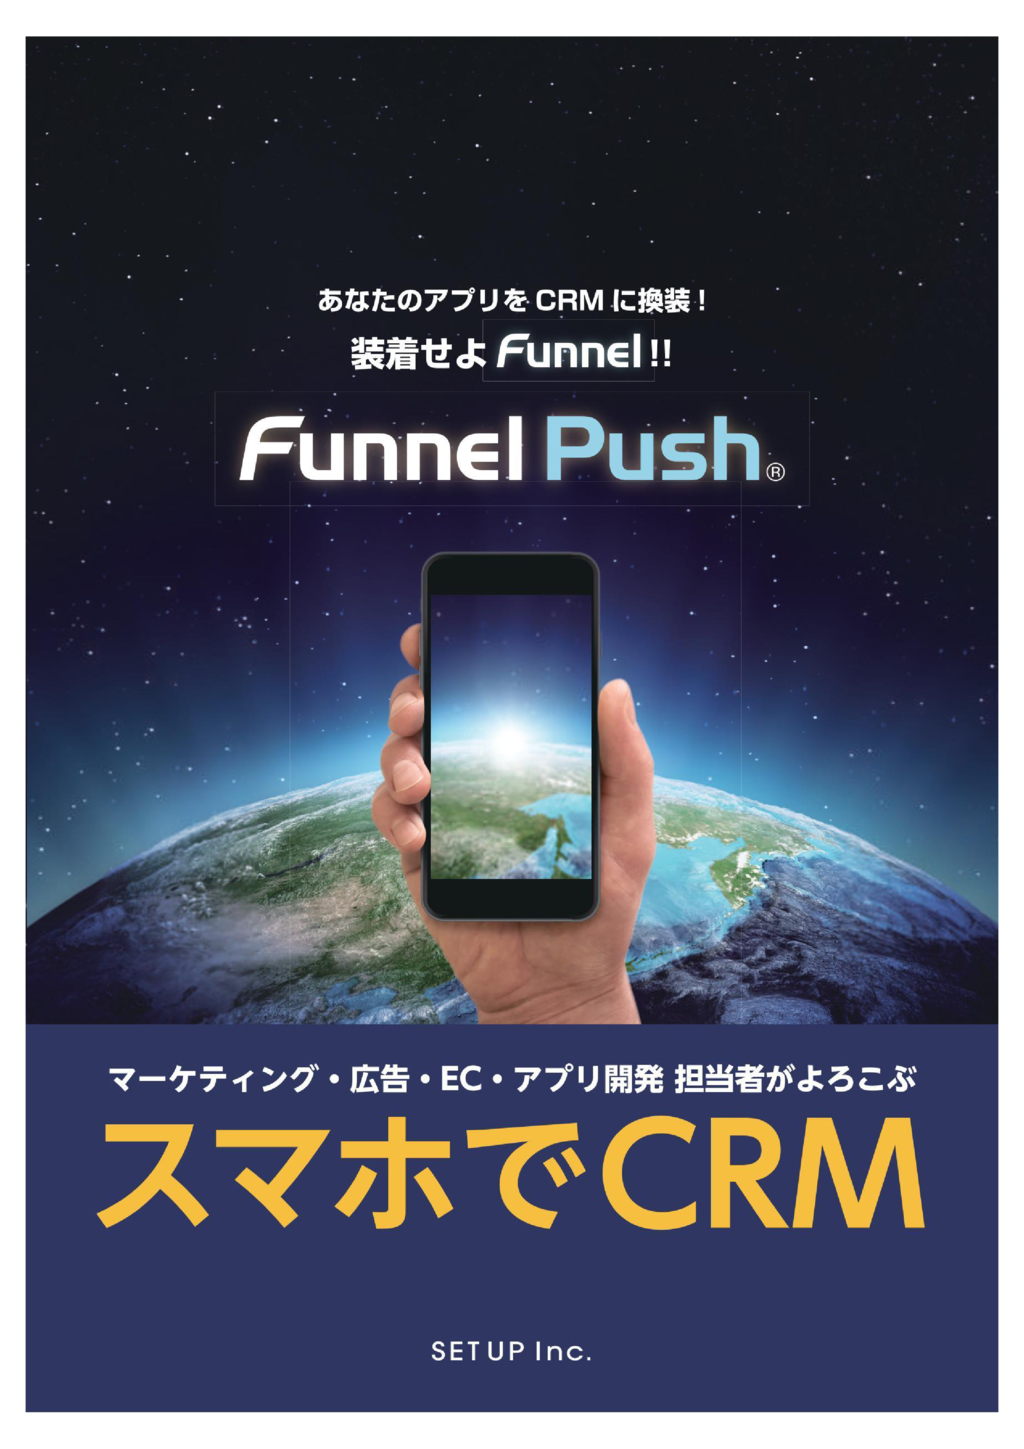 Funnel Pushの資料